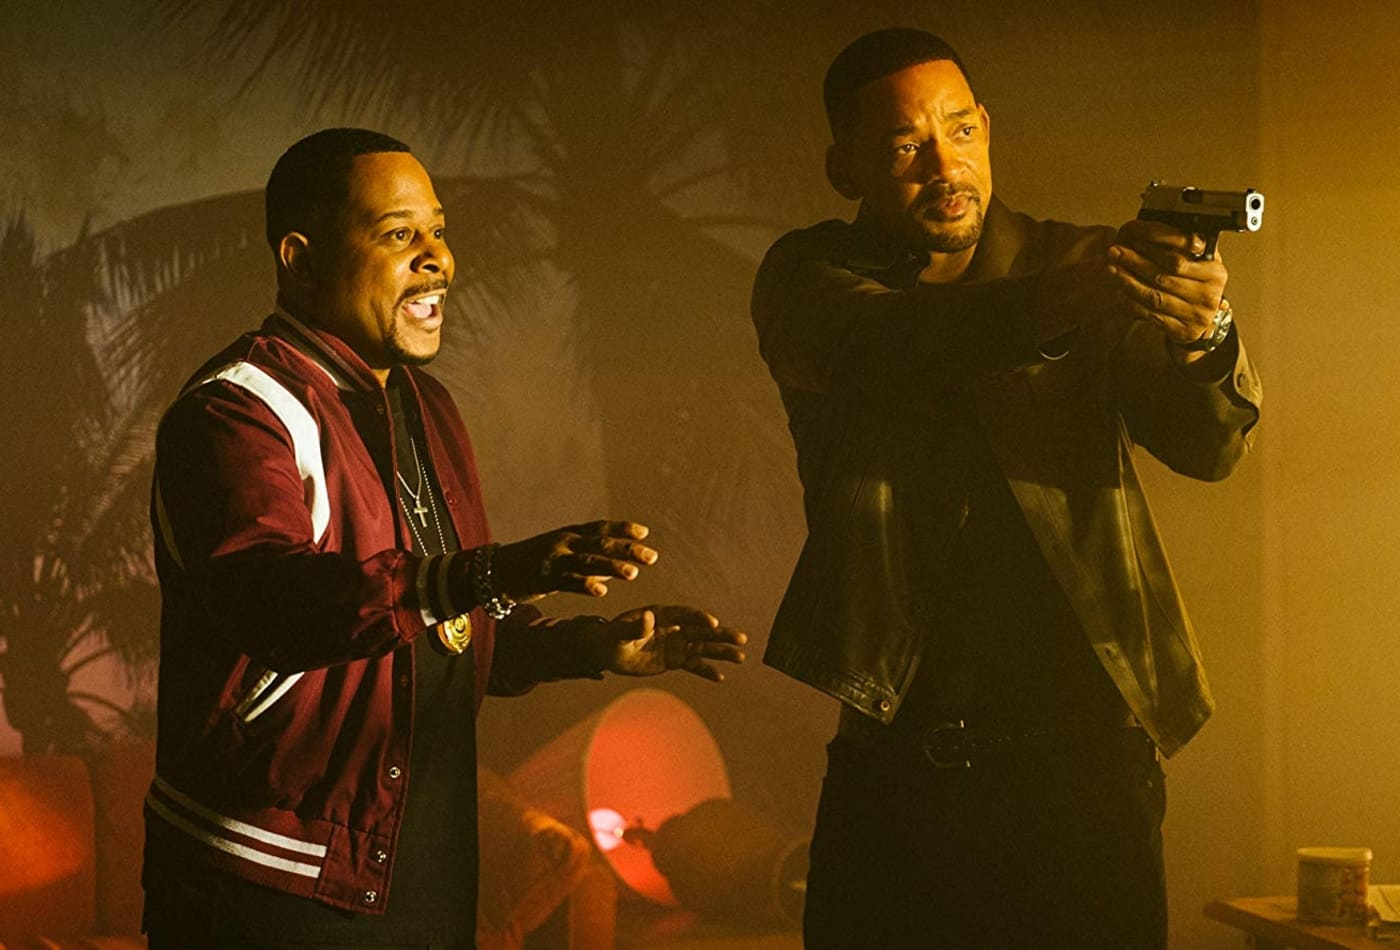 'Bad Boys For Life' tops box office for third weekend in a row